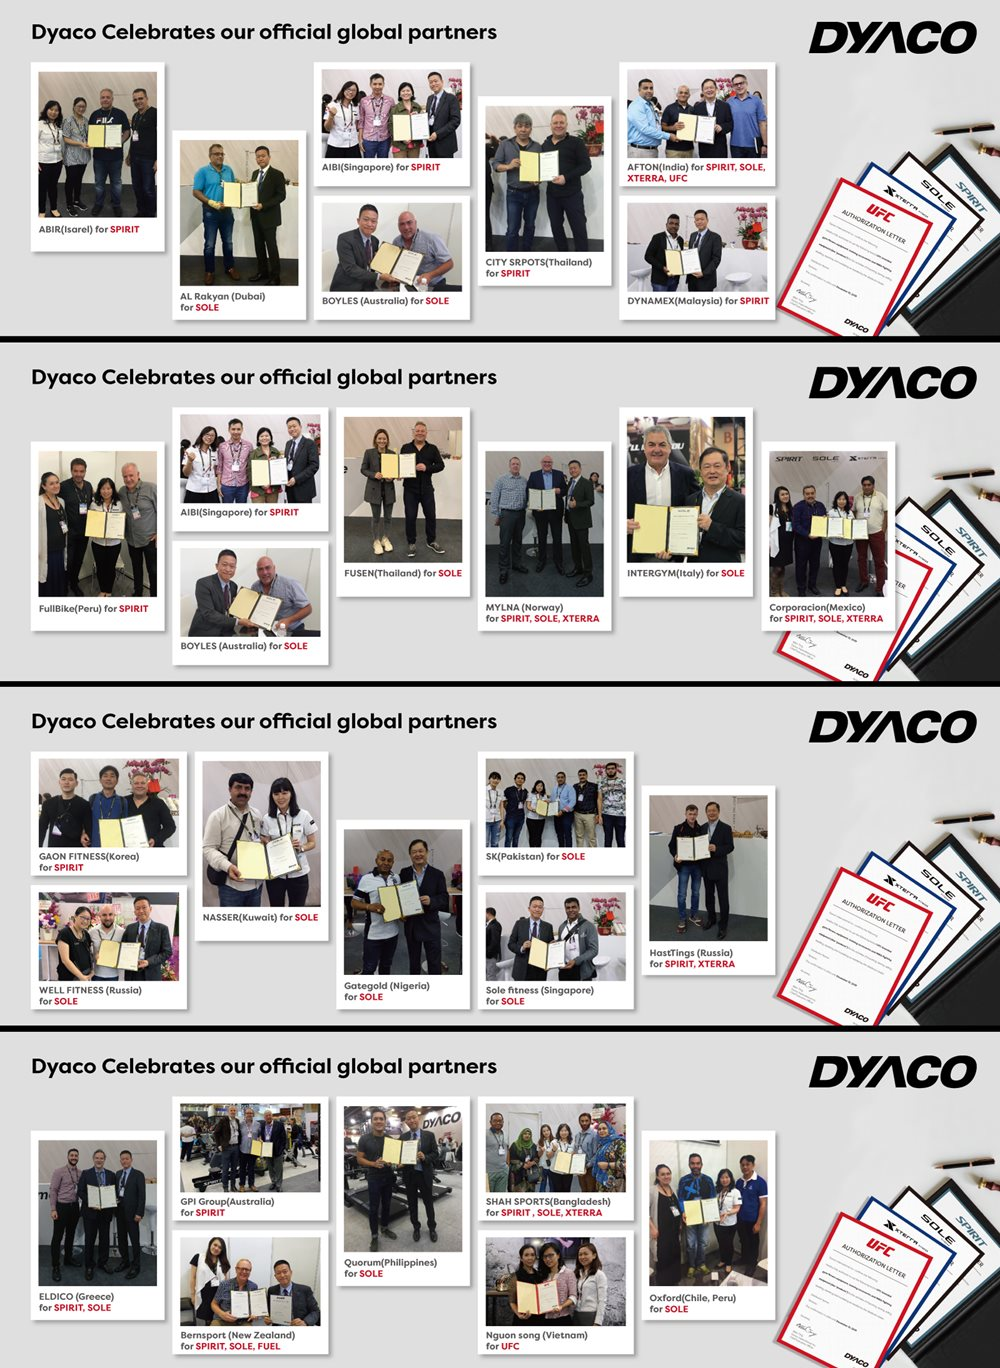 Dyaco Celebrates and Congratulates their Official Global Partners.